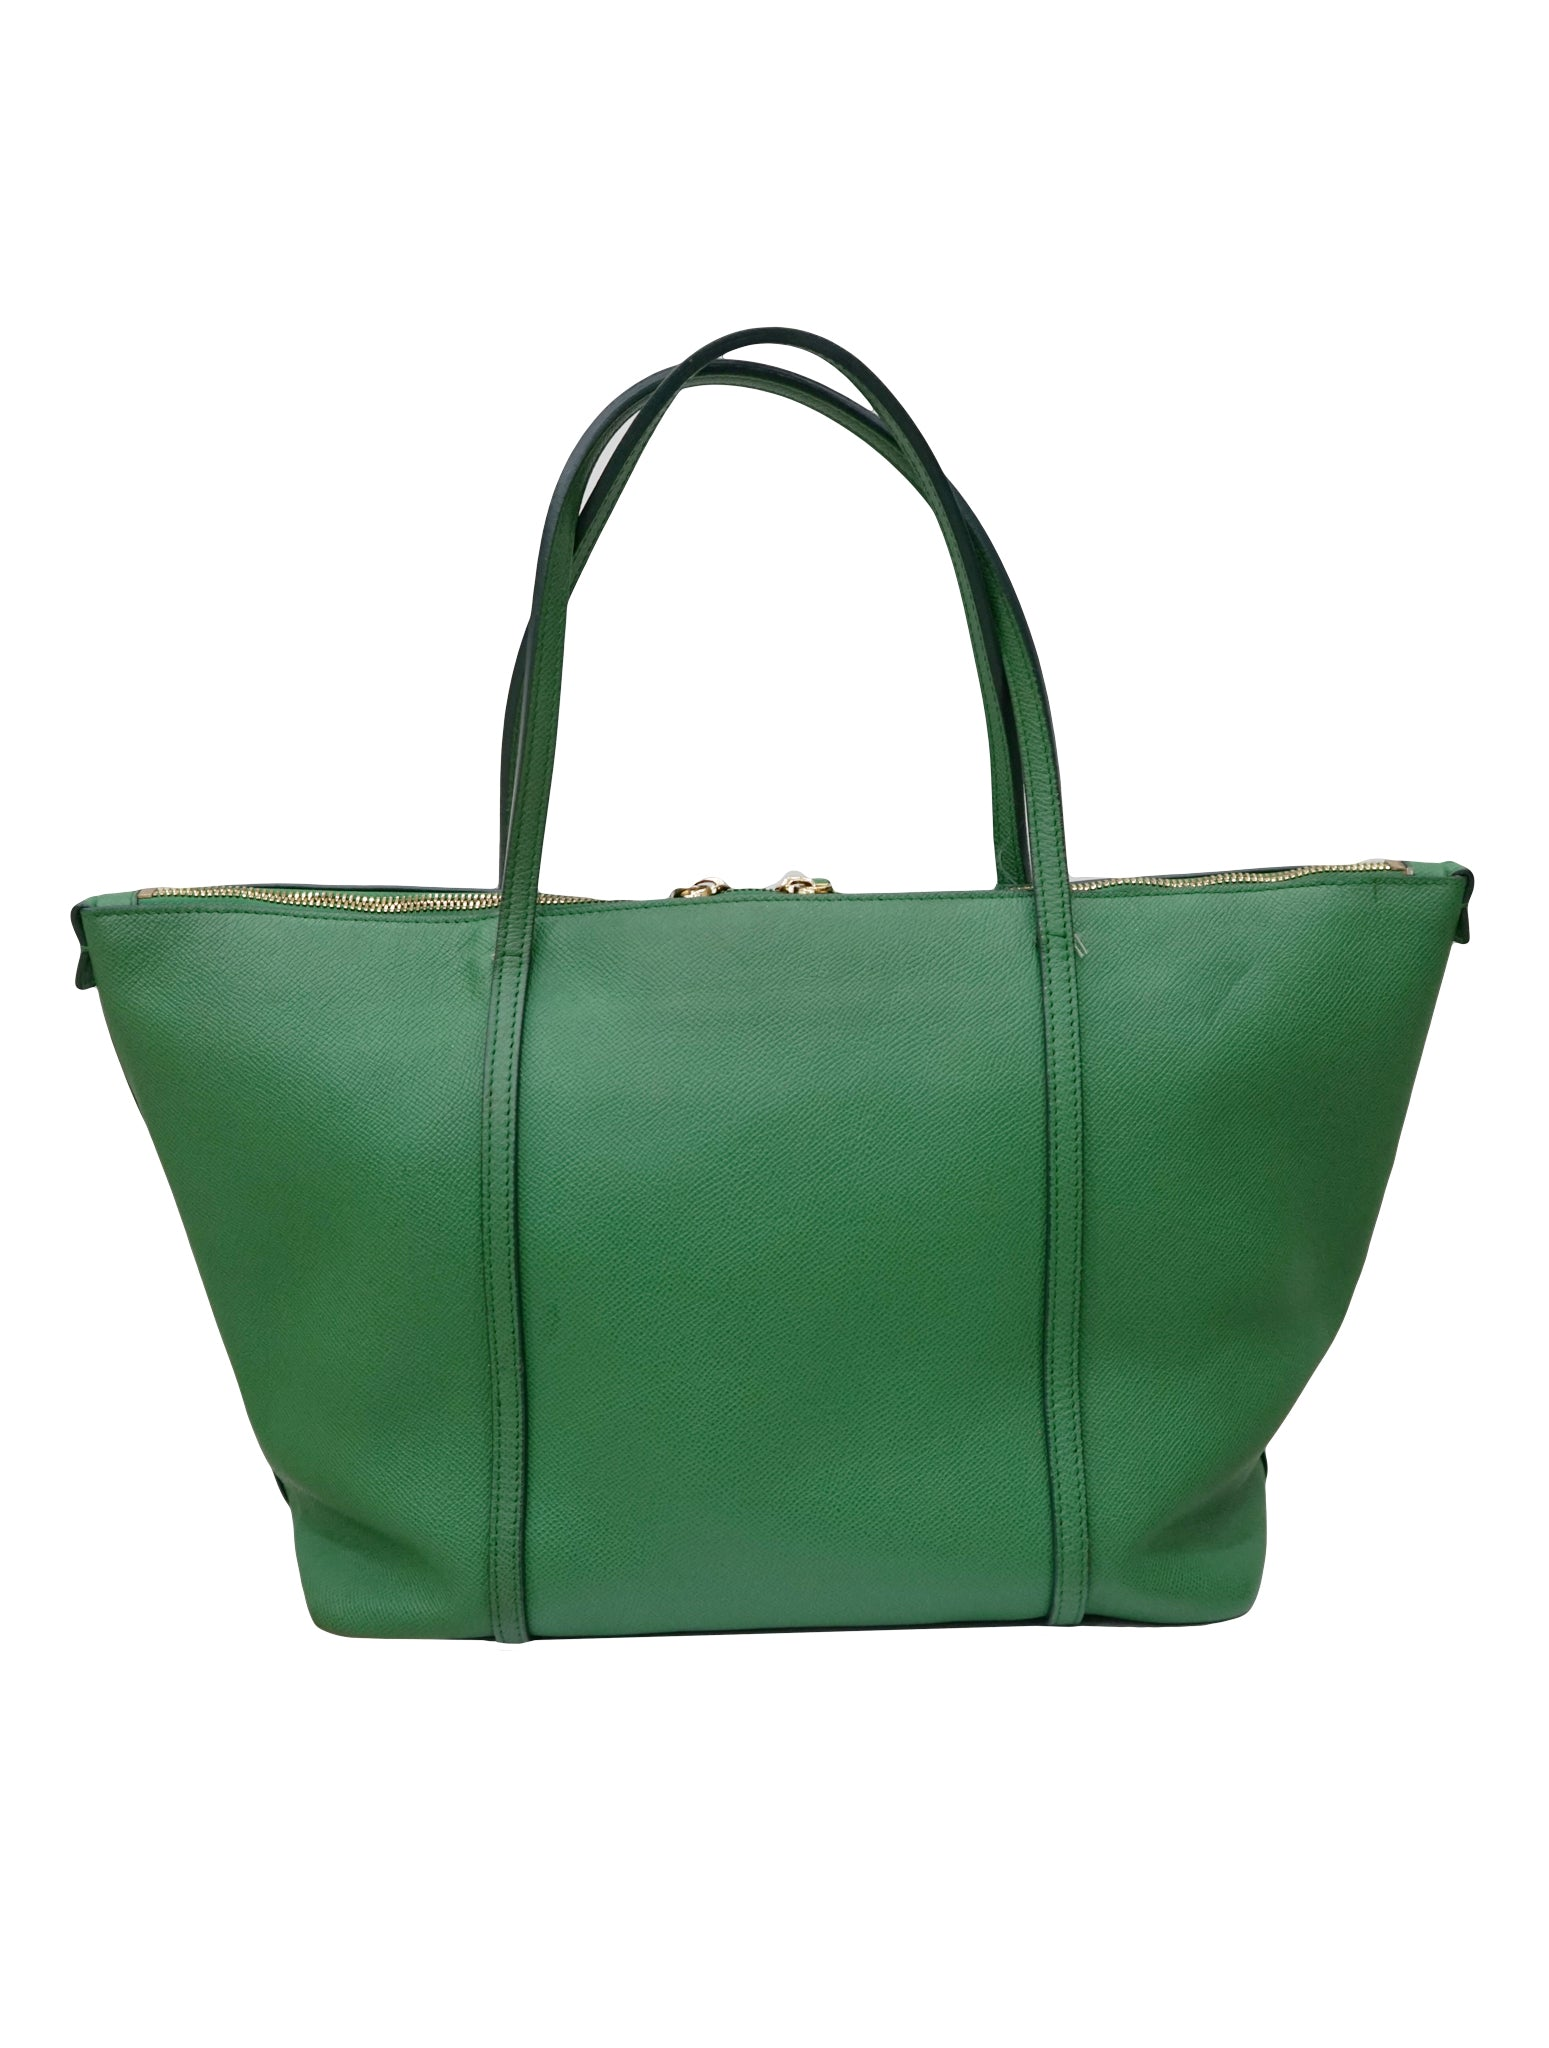 GREEN LEATHER MISS ESCAPE TOTE BAG